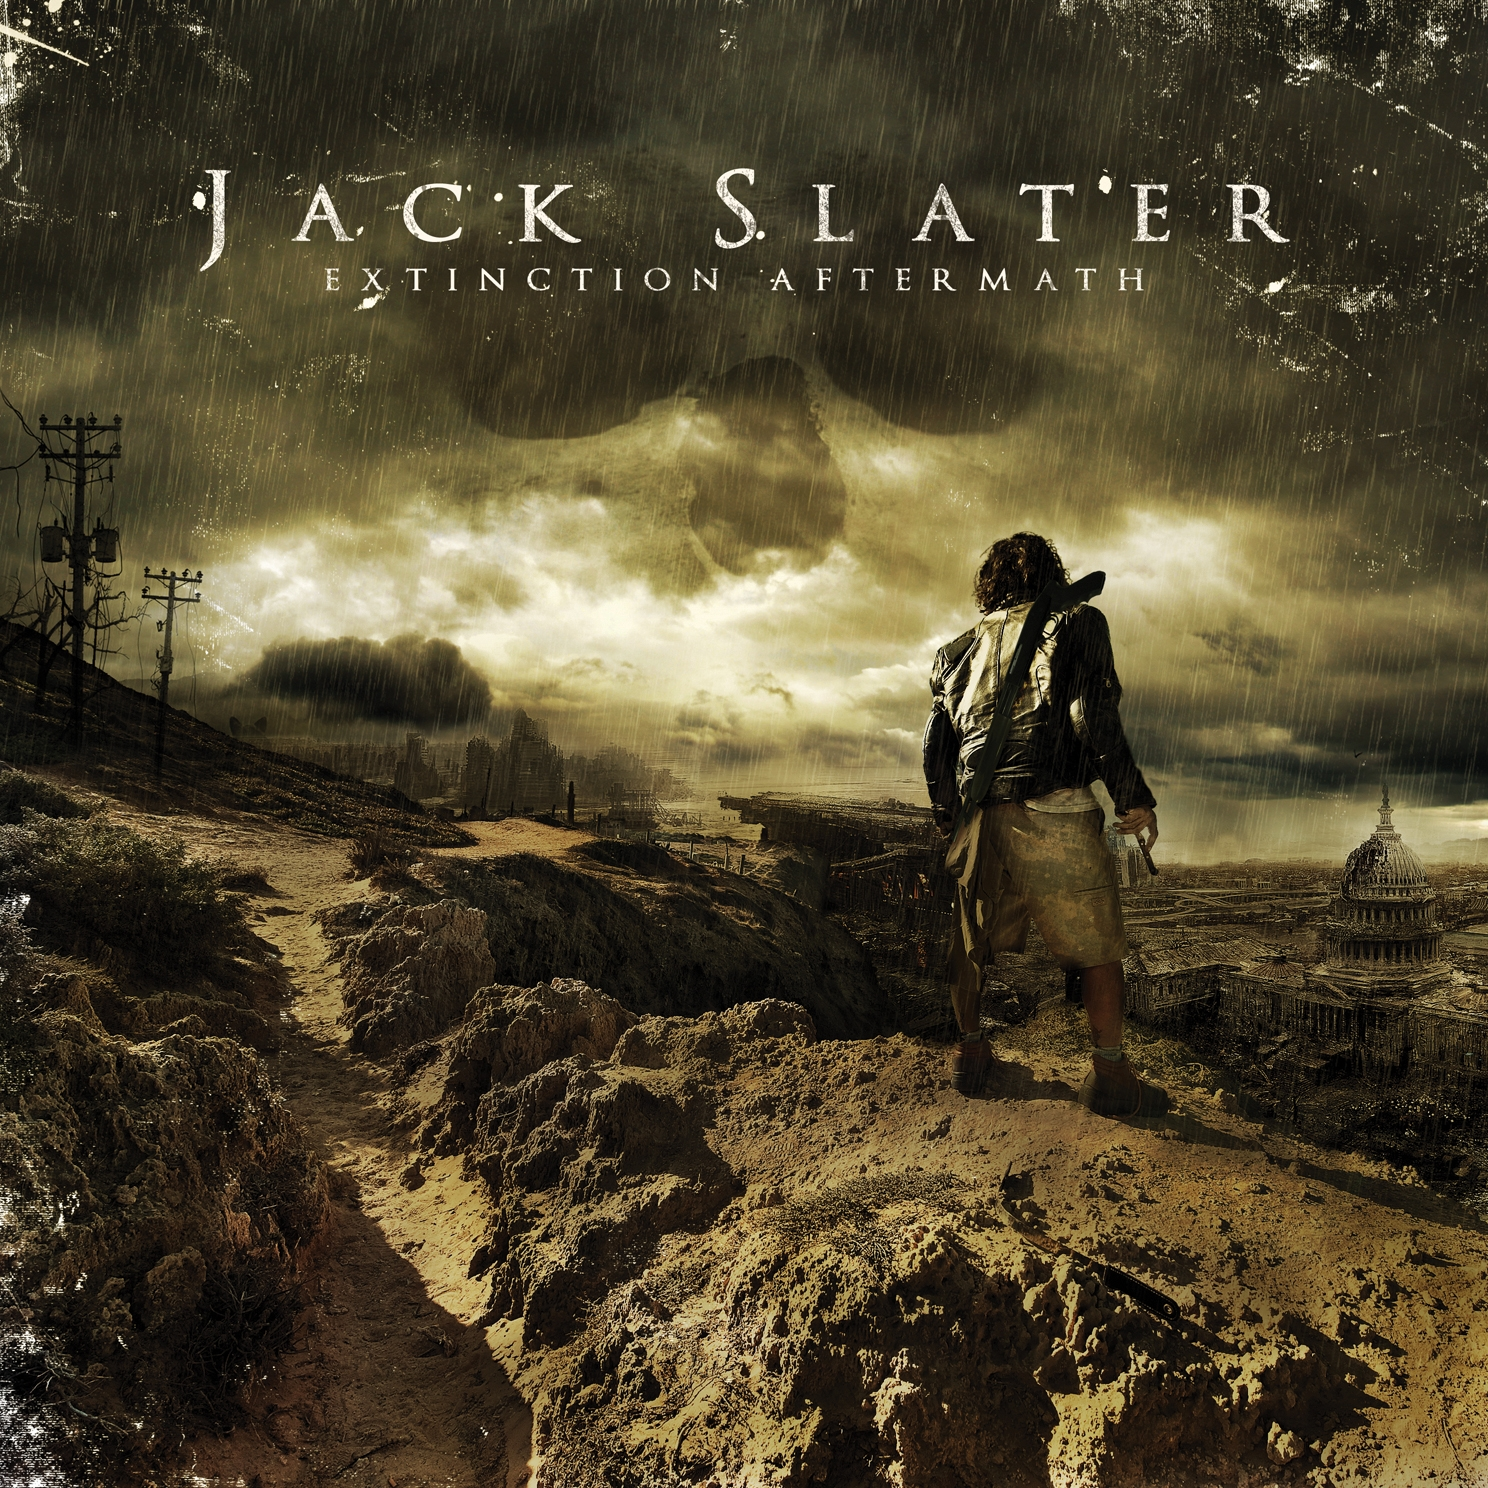 jackslater_cover_extinction_aftermath.jpg